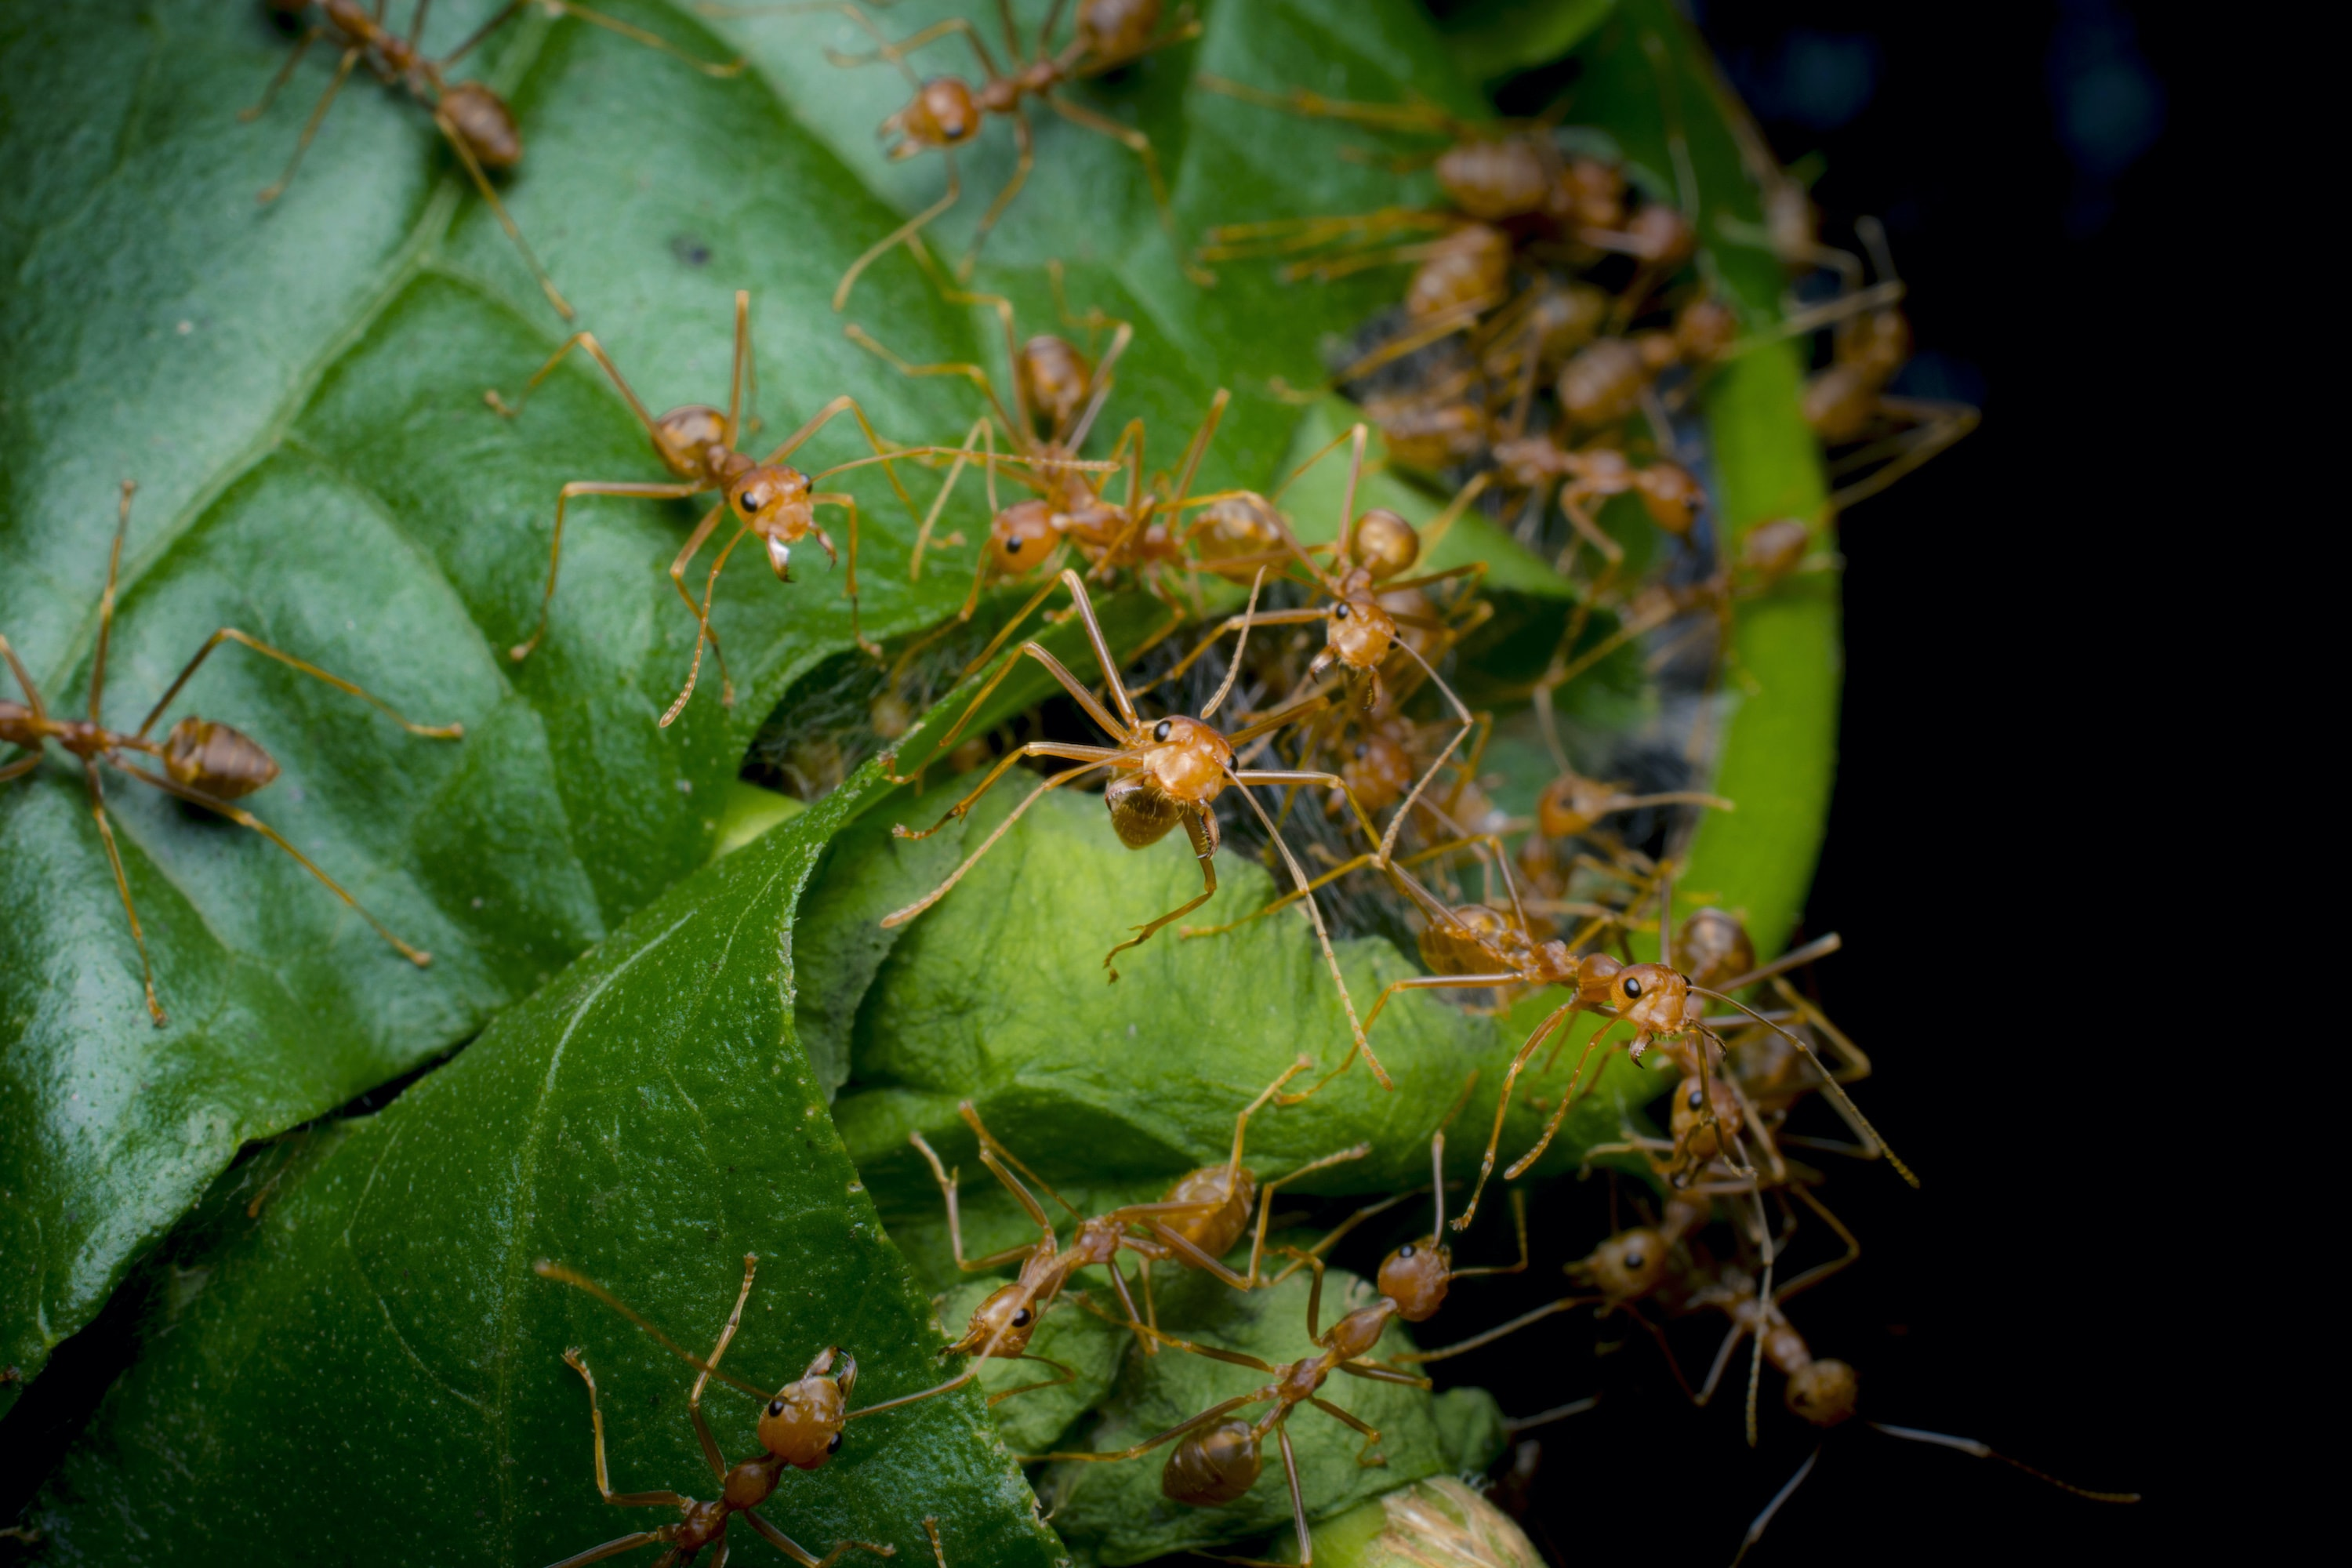 At the site of a weaver ant nest under construction, a group of weavers go into defense mode when they sense the presence of the photographer.  Cover photo: A group of weaver ants make quick work of a caterpillar that crossed paths with them.